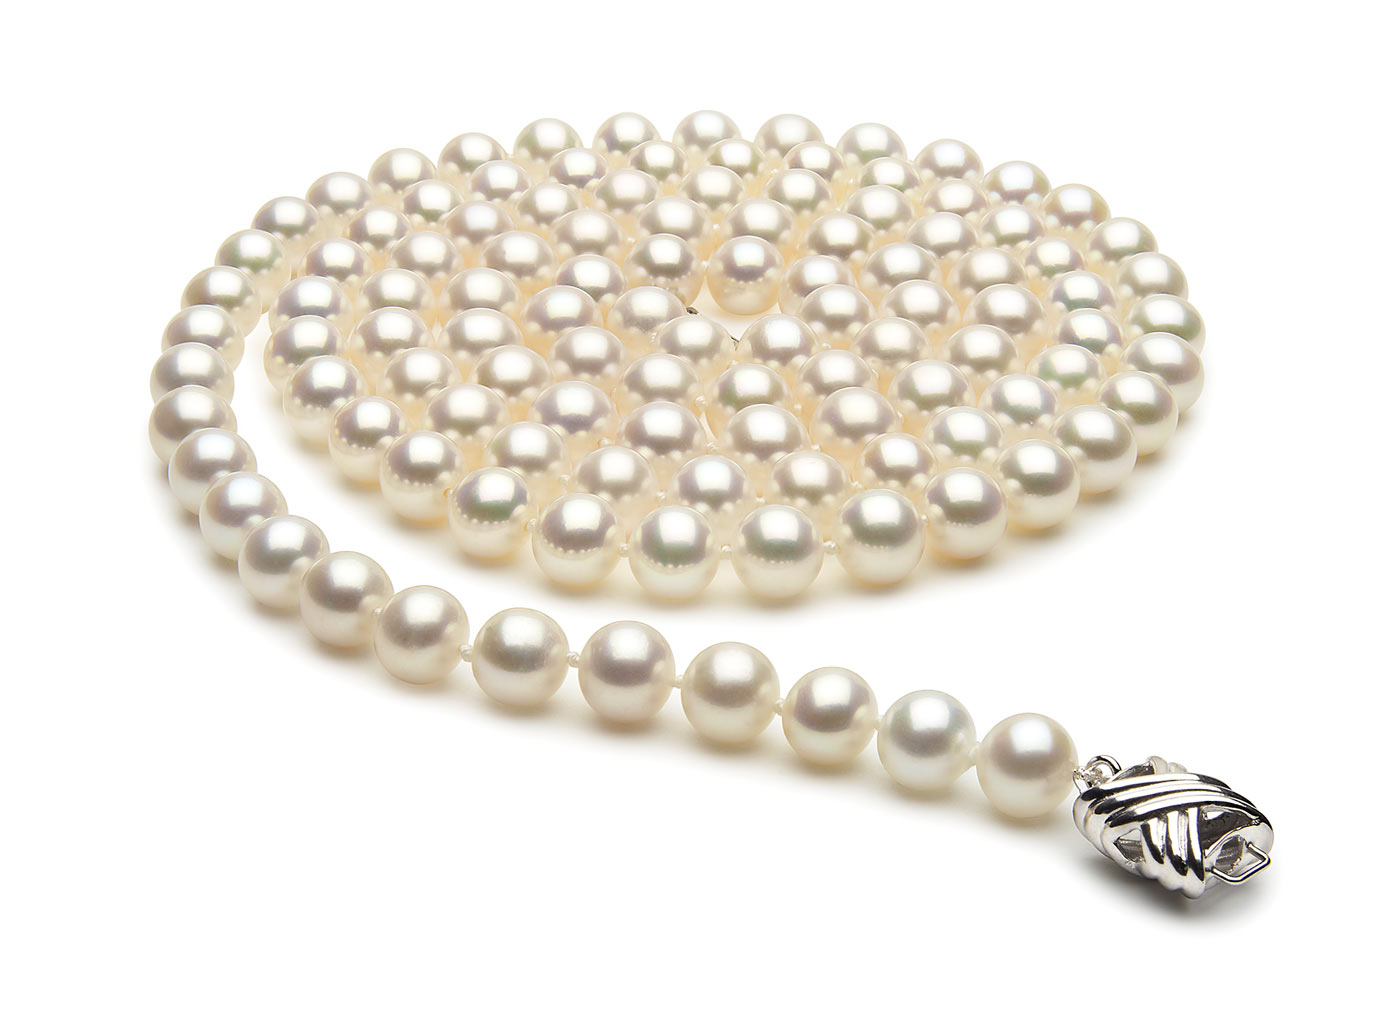 36 Inch 7.5mm x 8mm Freshwater Cultured Pearl Necklace